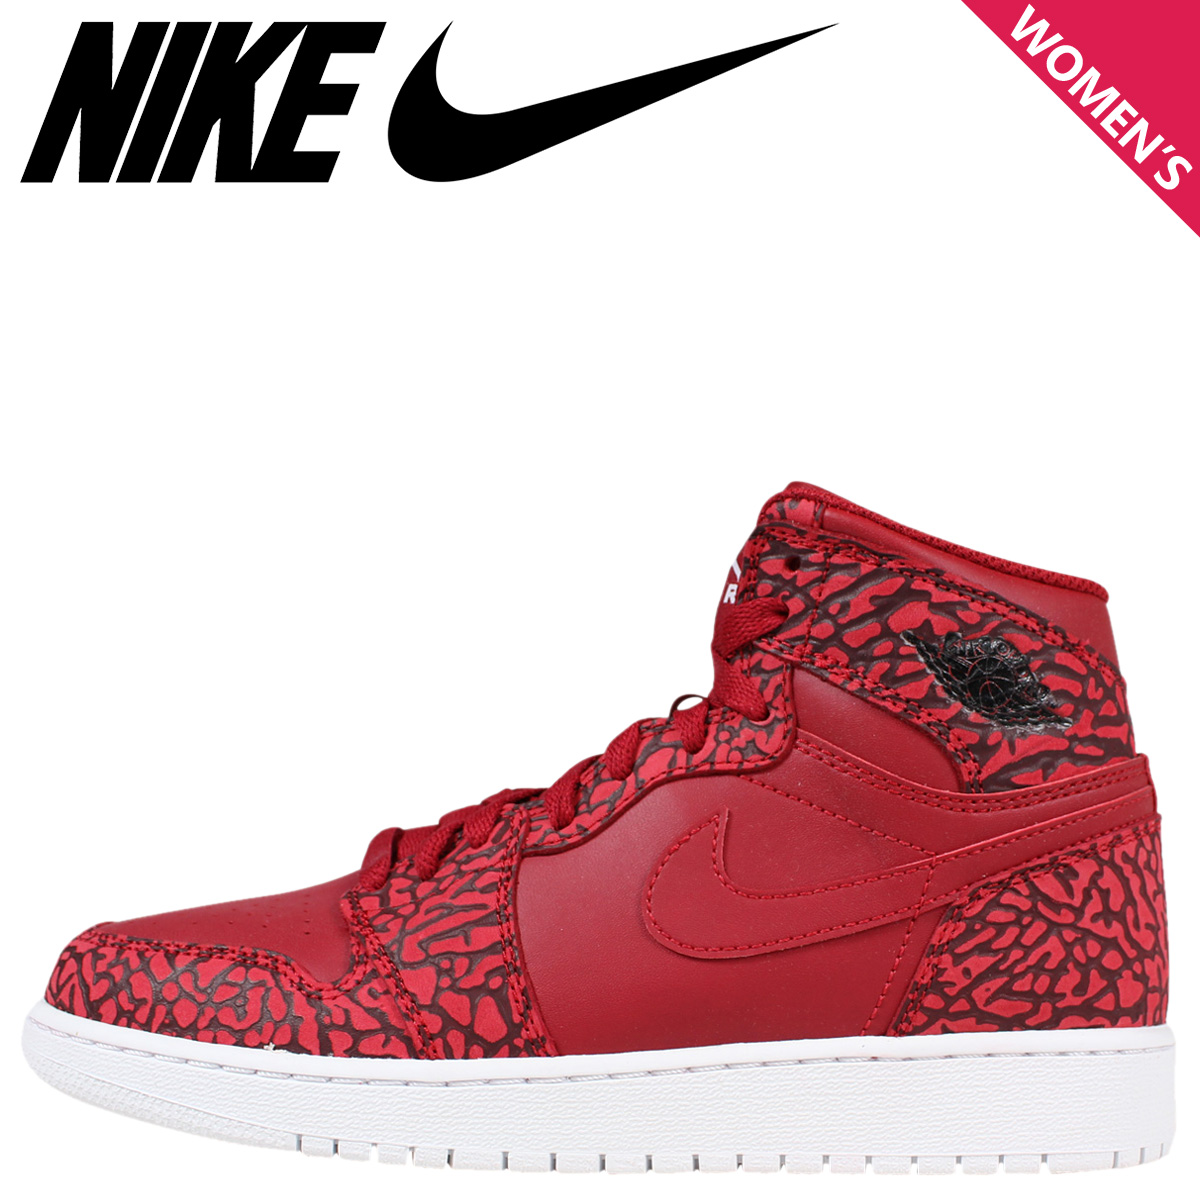 brand new 4199c 36a3a Nike NIKE Air Jordan sneakers Womens AIR JORDAN 1 HI PREMIUM BG Air Jordan  1 Hi premium 838850-600 shoes Red